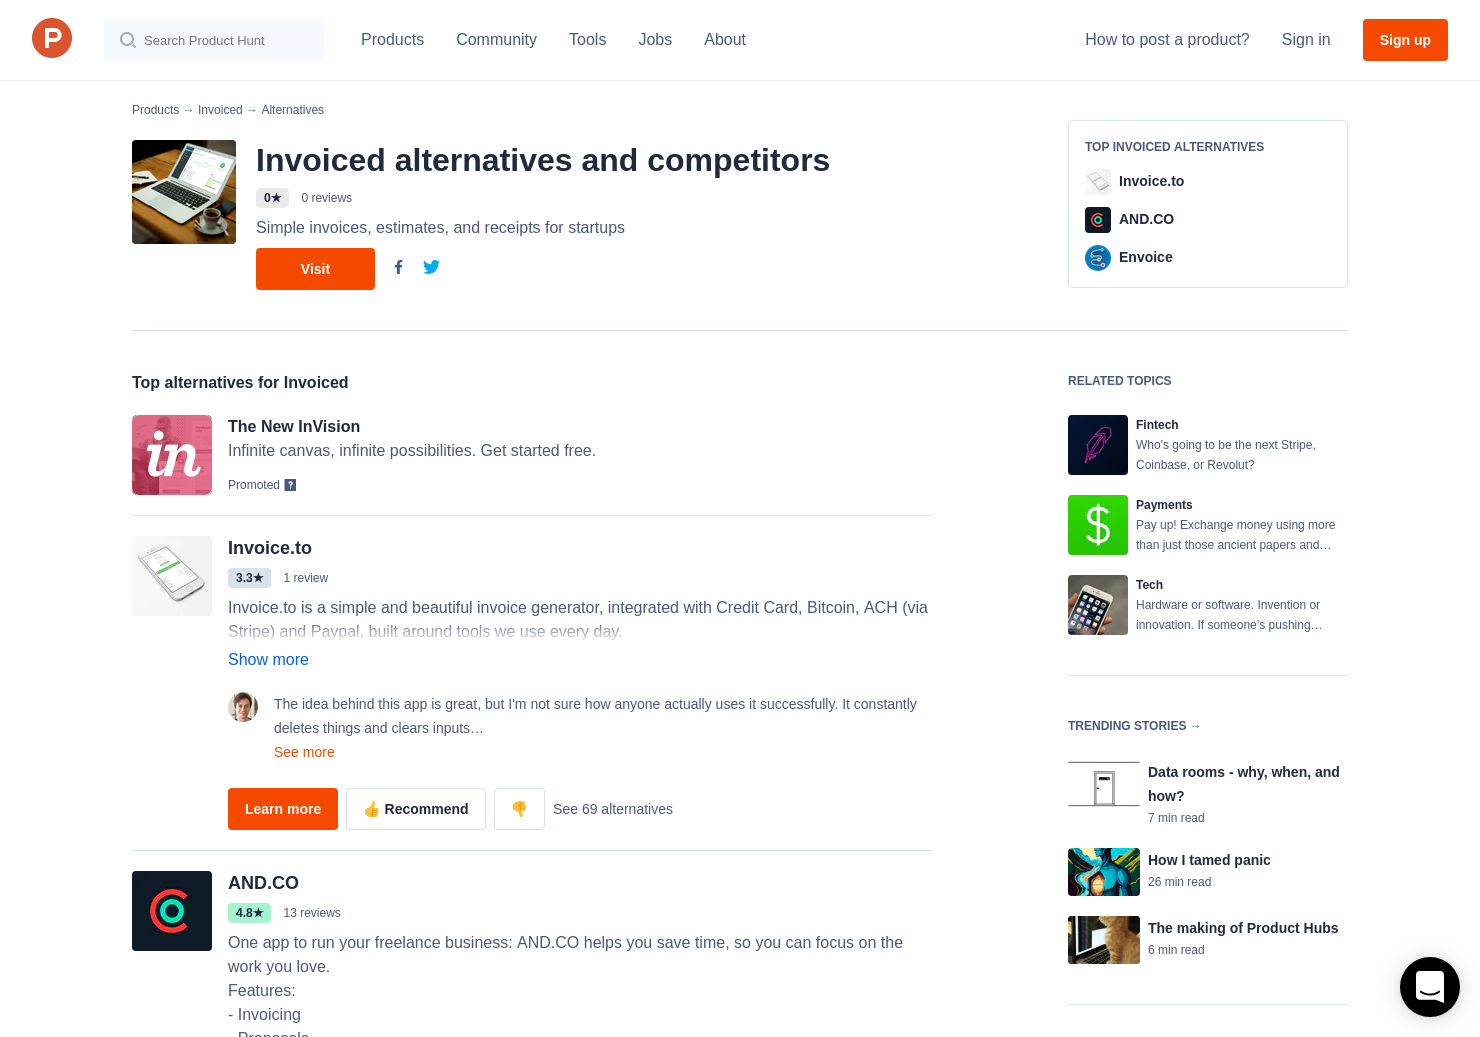 14 alternatives to invoiced product hunt